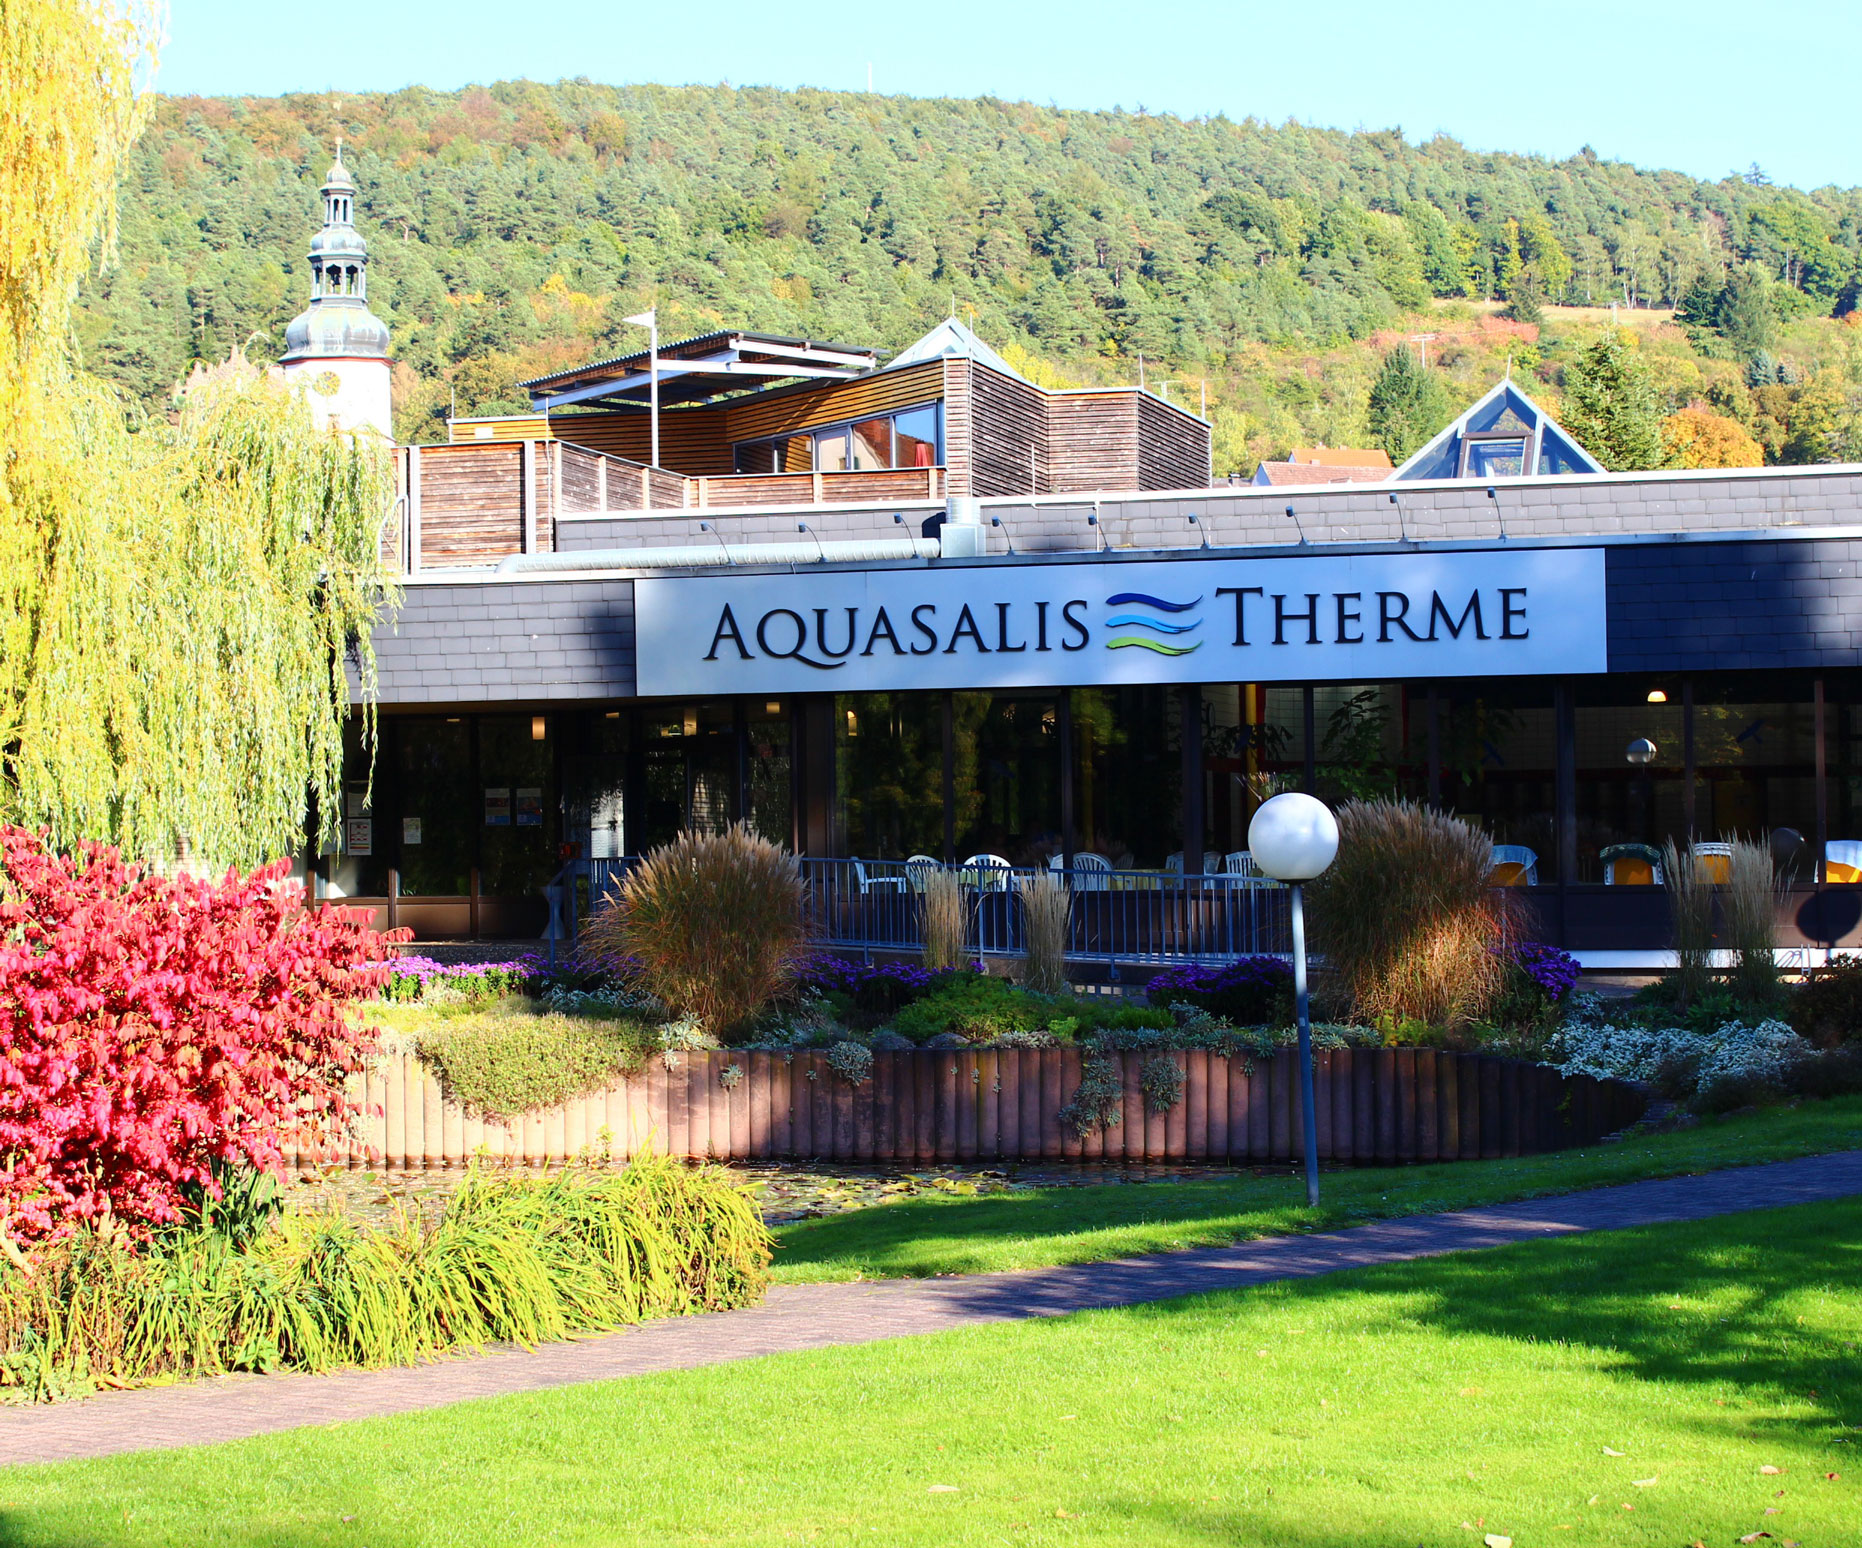 Aquasalis-Therme Bad Salzschlirf